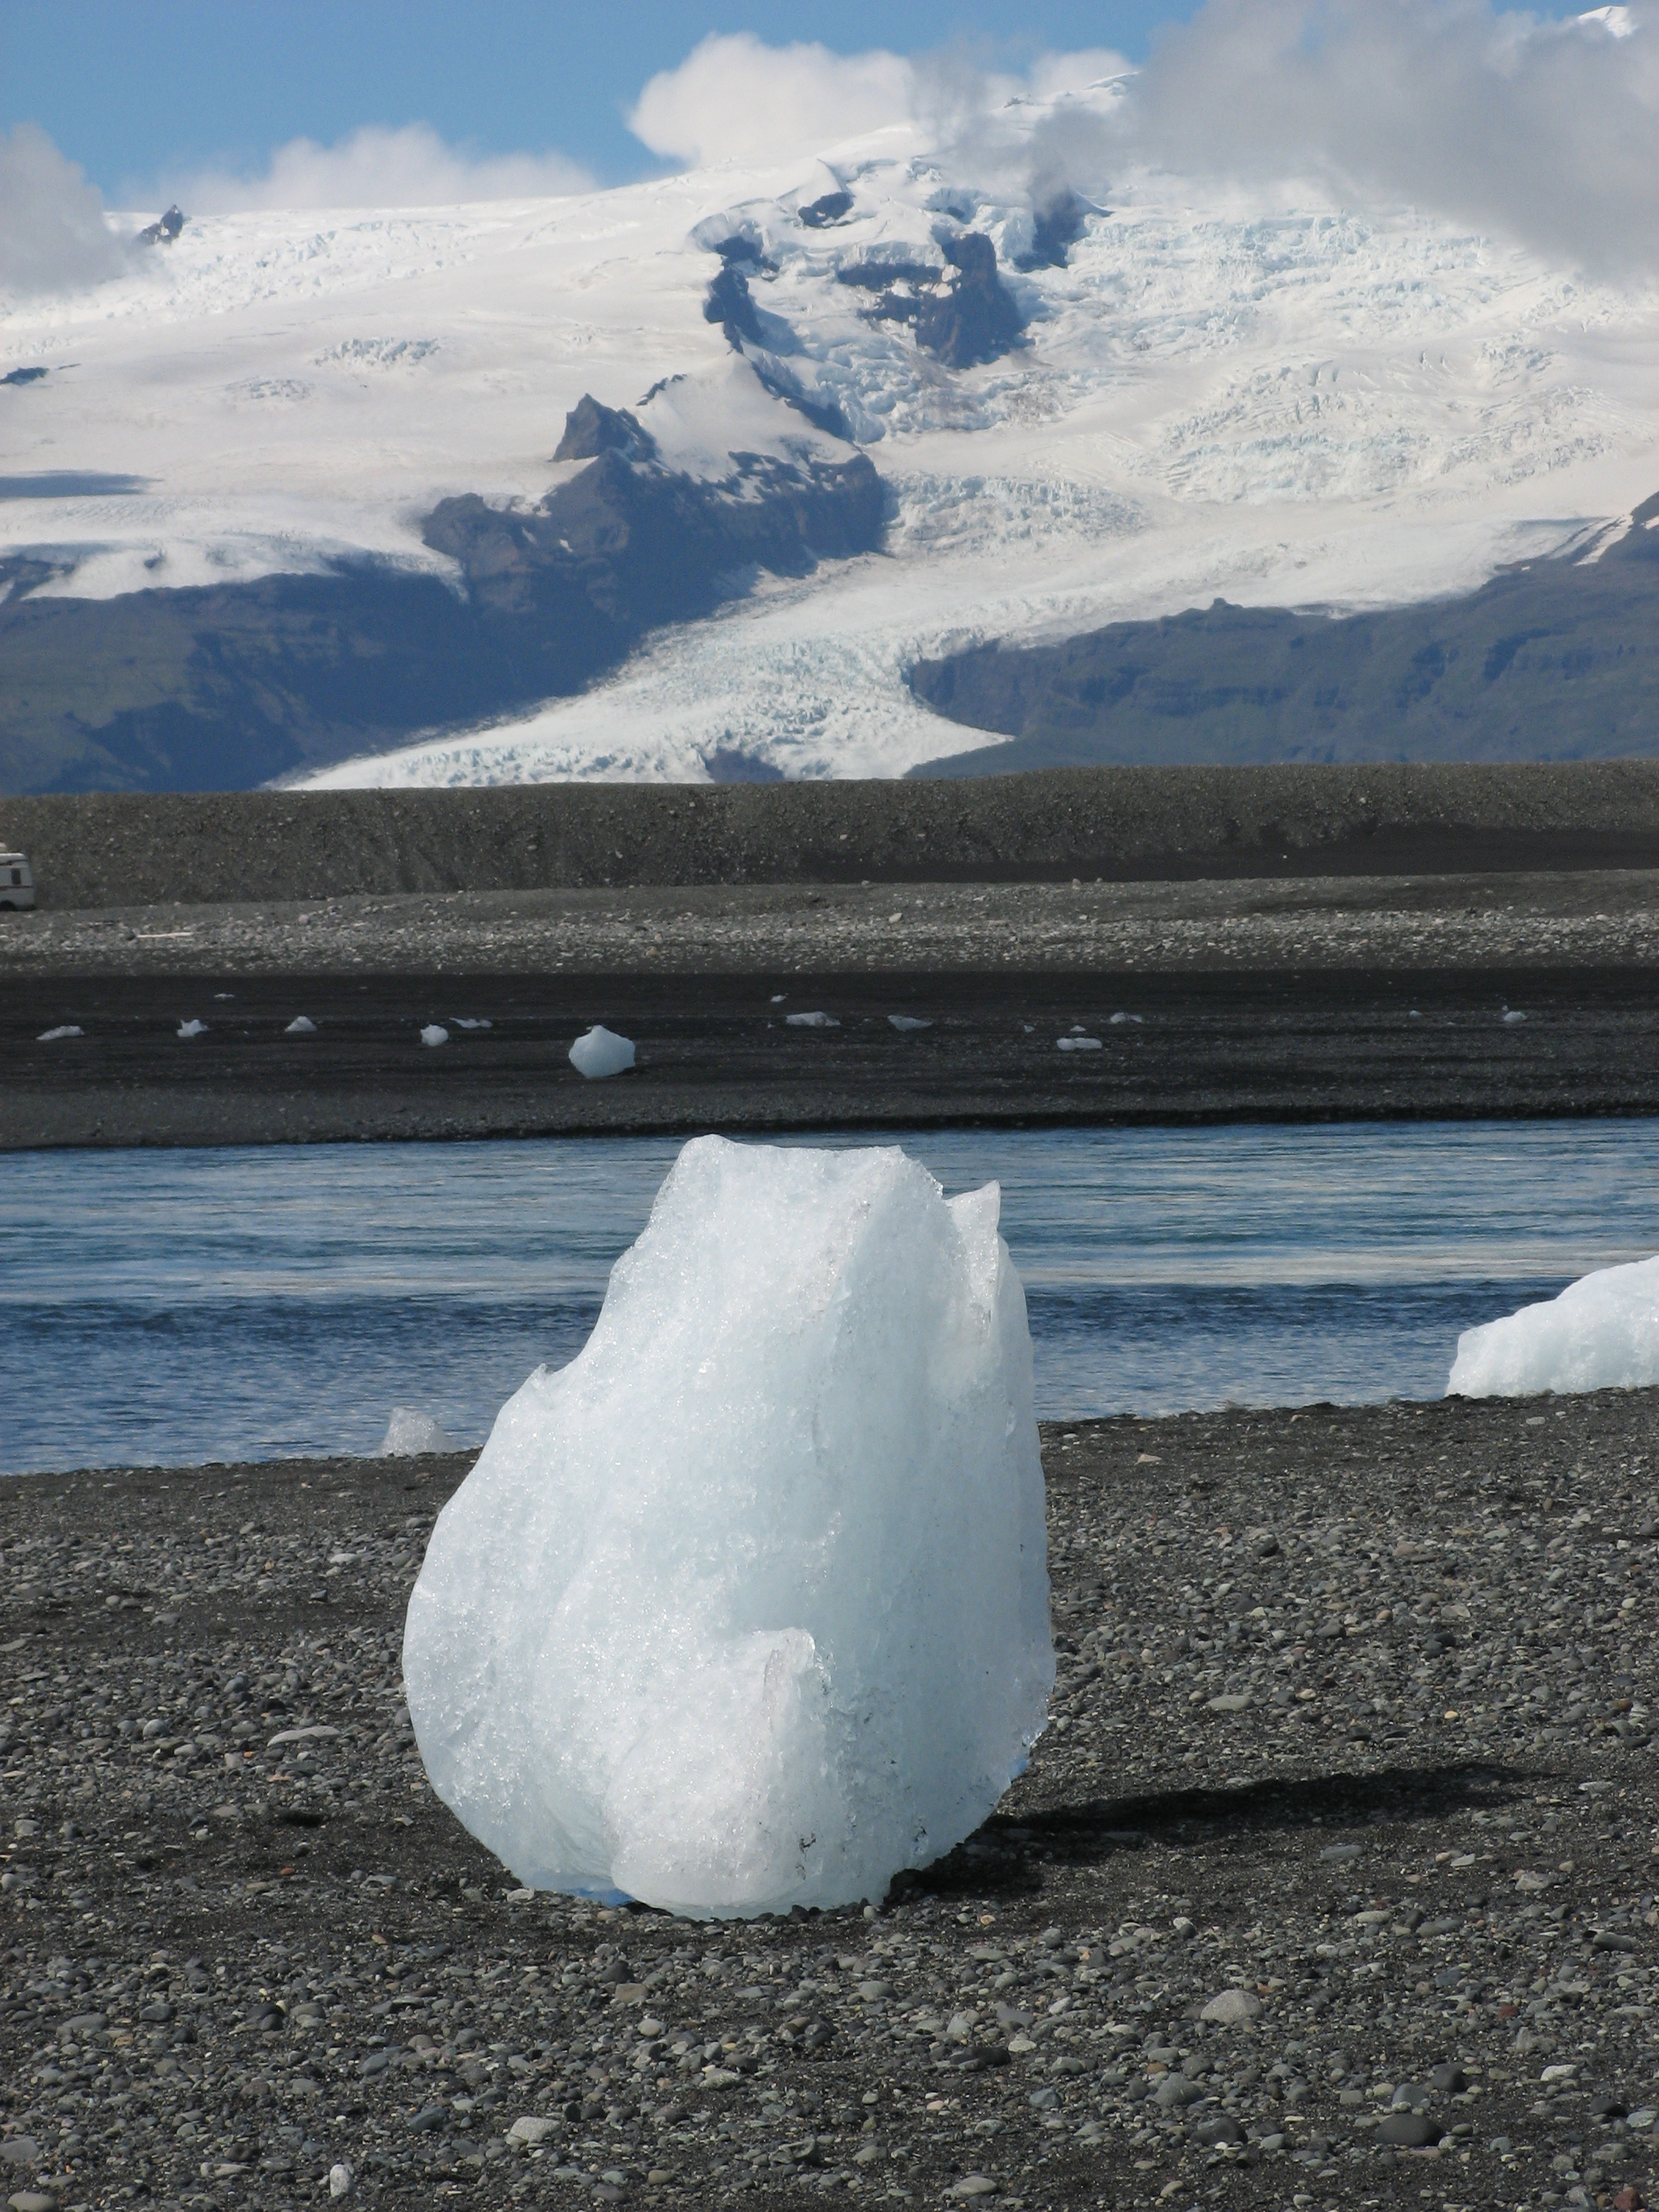 An iceburg can't numb the pain of periodontal issues - pay attention to oral health during menopause!